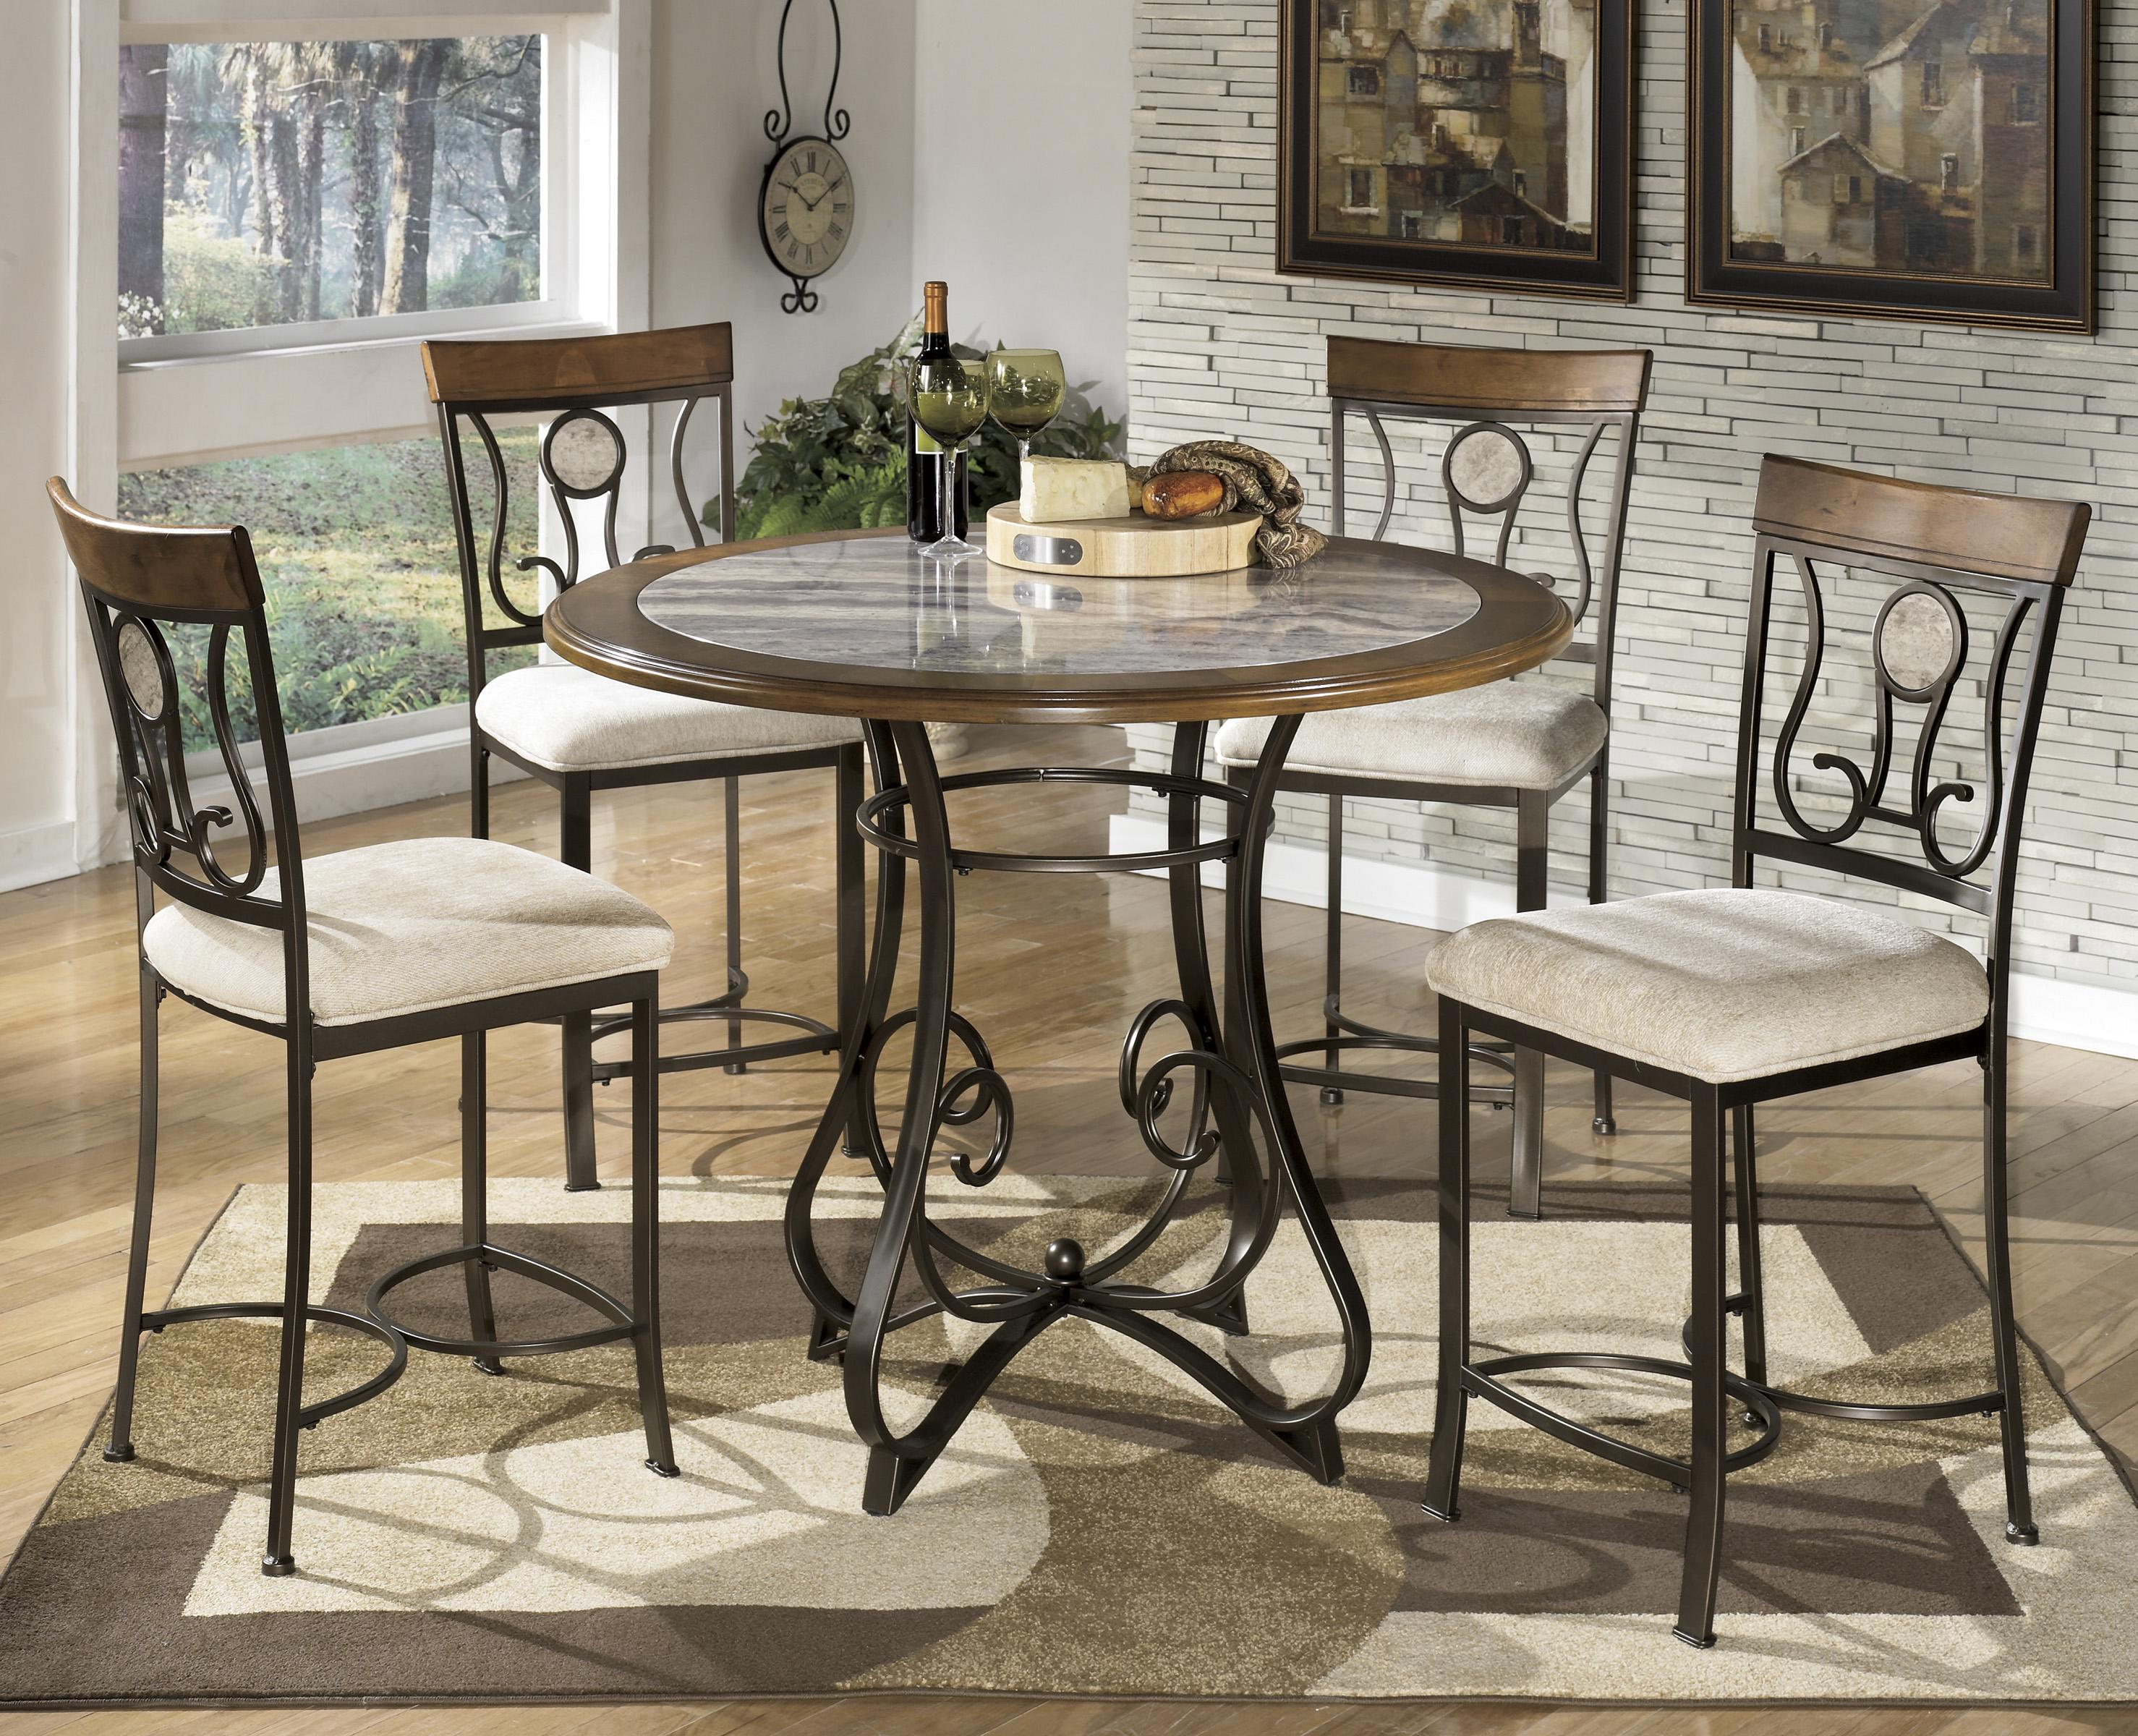 Signature Design by Ashley Hopstand 5-Piece Round Counter Table Set - Item Number: D314-13B+T+4x124